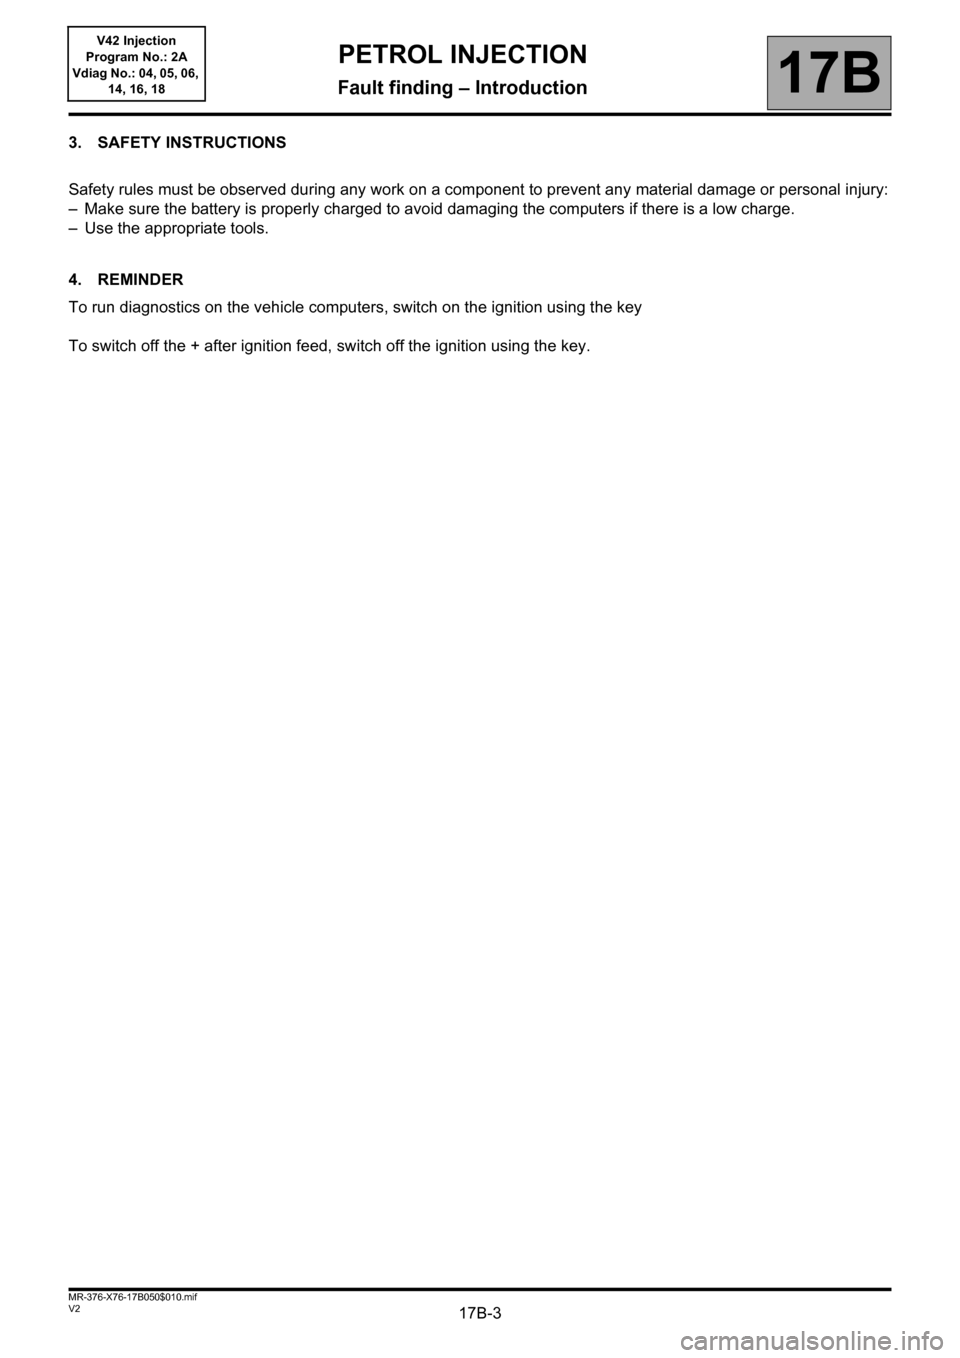 RENAULT KANGOO 2013 X61 / 2.G Petrol V42 Injection Workshop Manual, Page 3